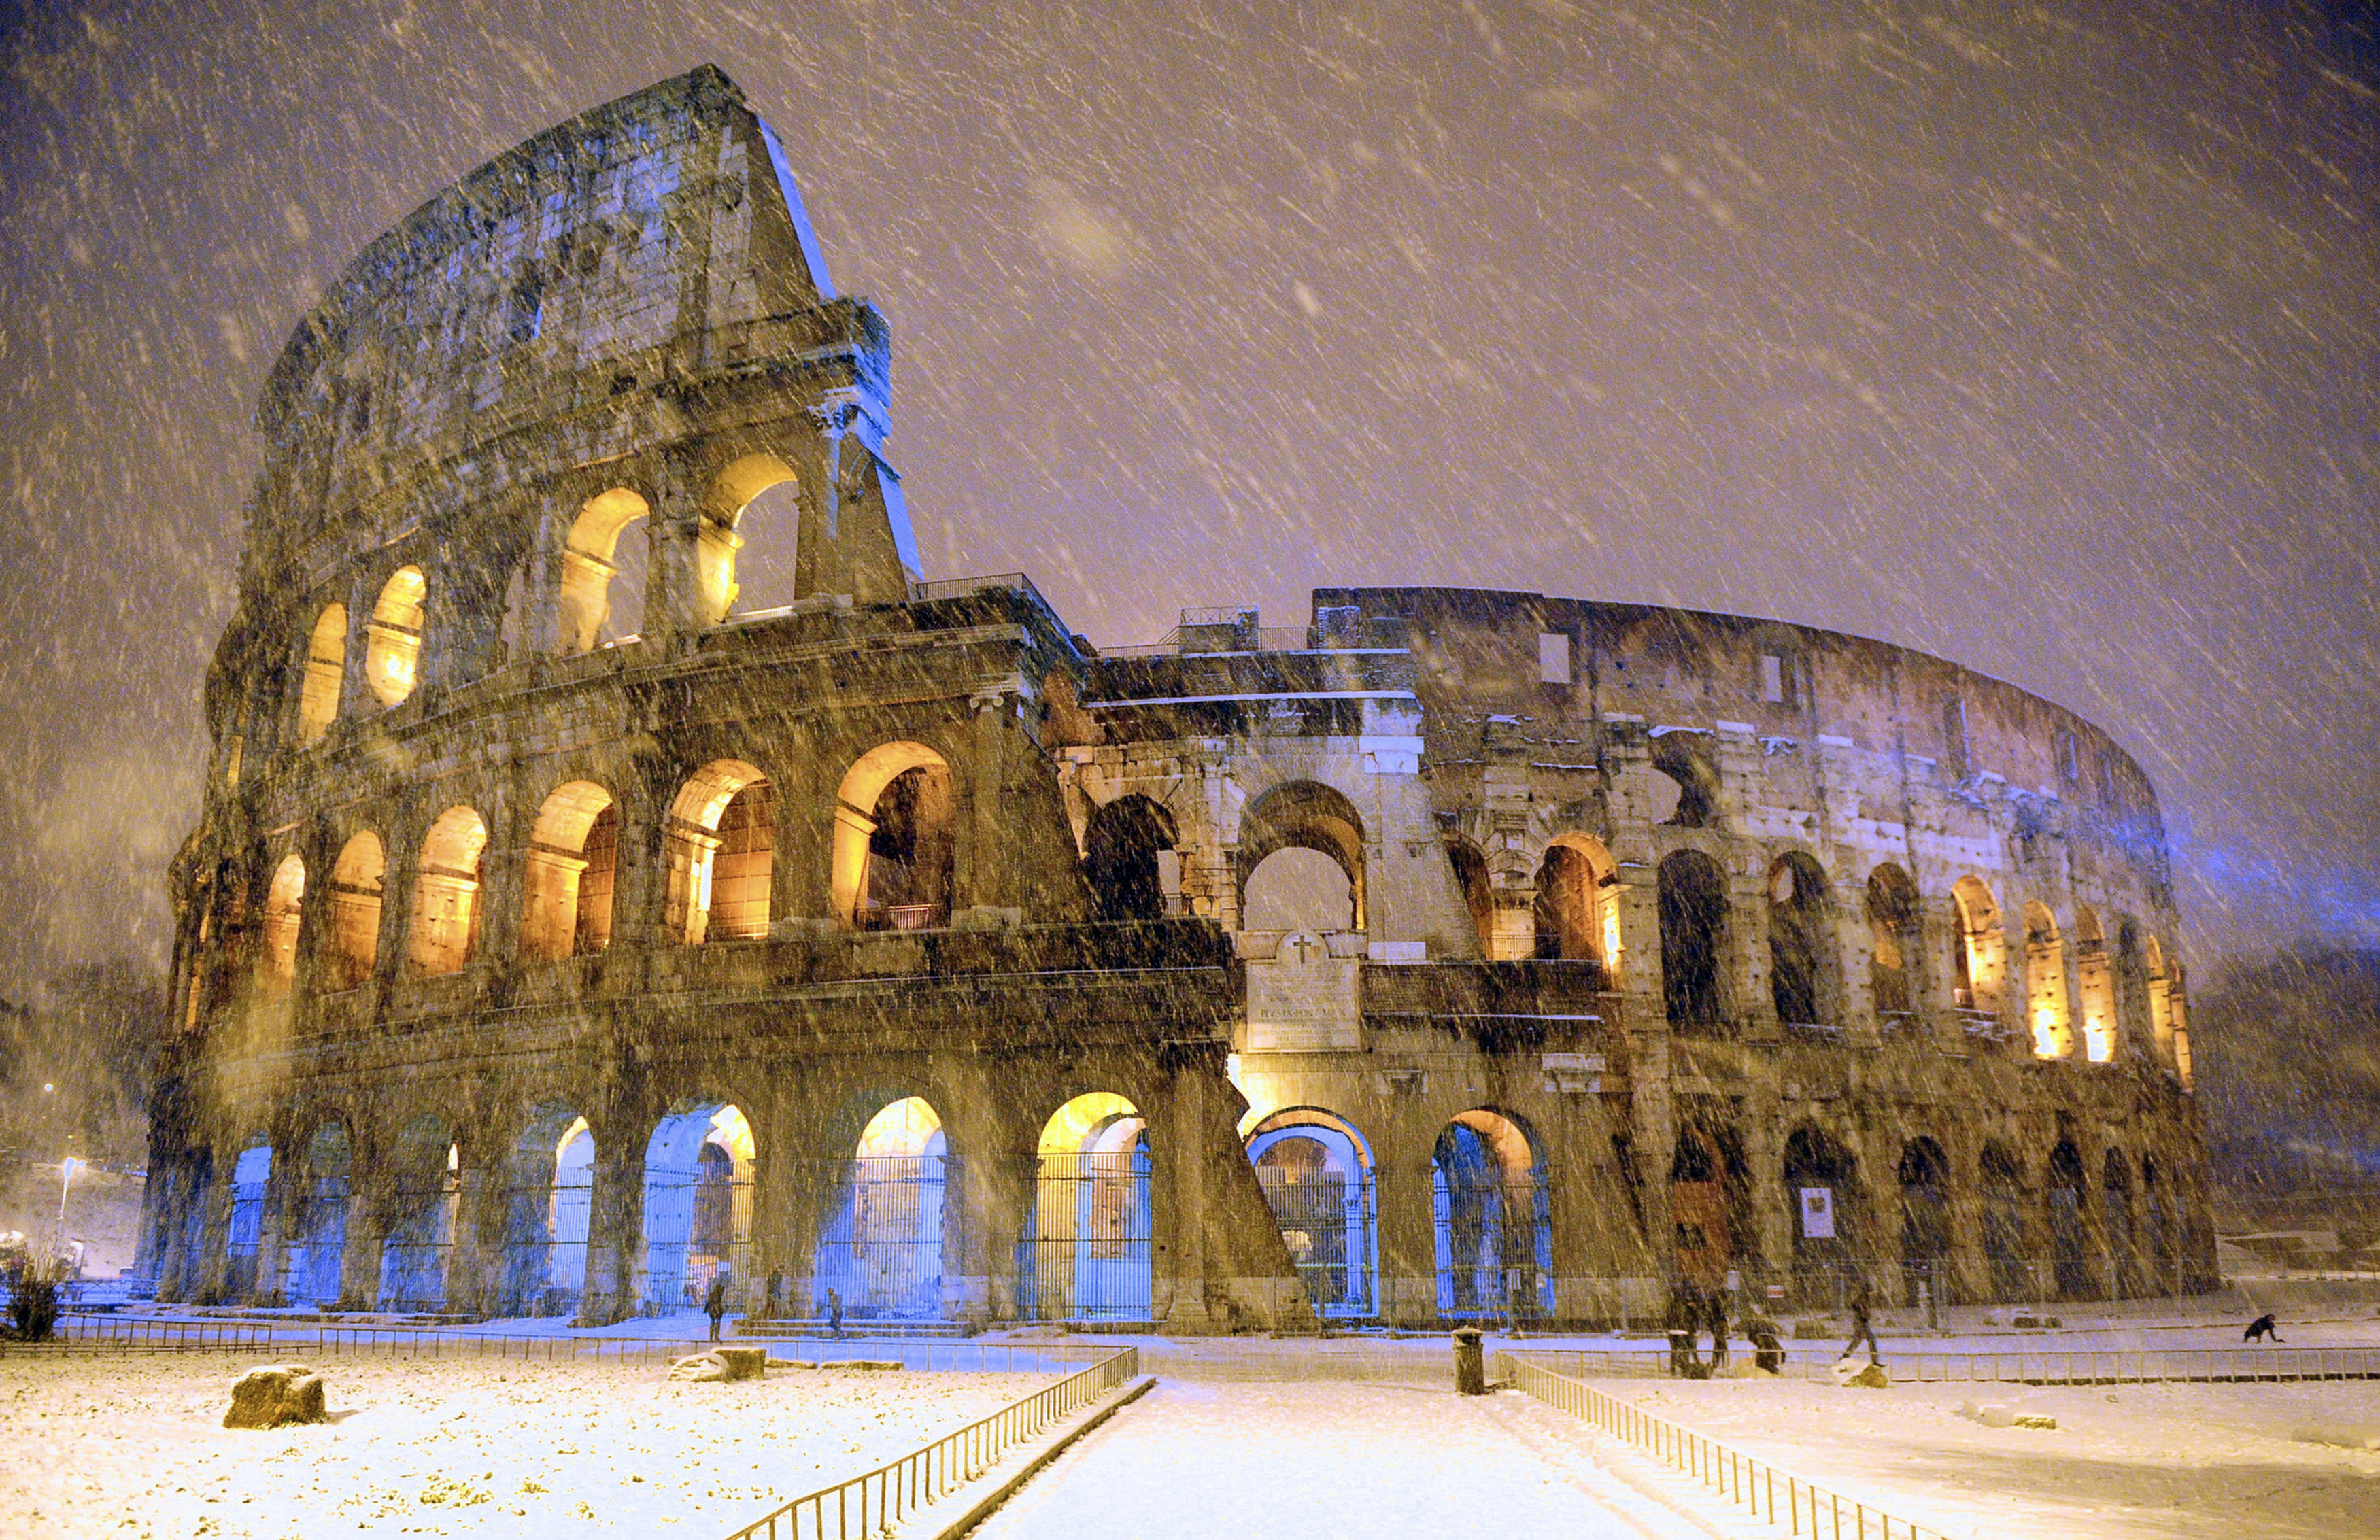 The ancient Colosseum is seen during an heavy snowfalls late in the night  in Rome